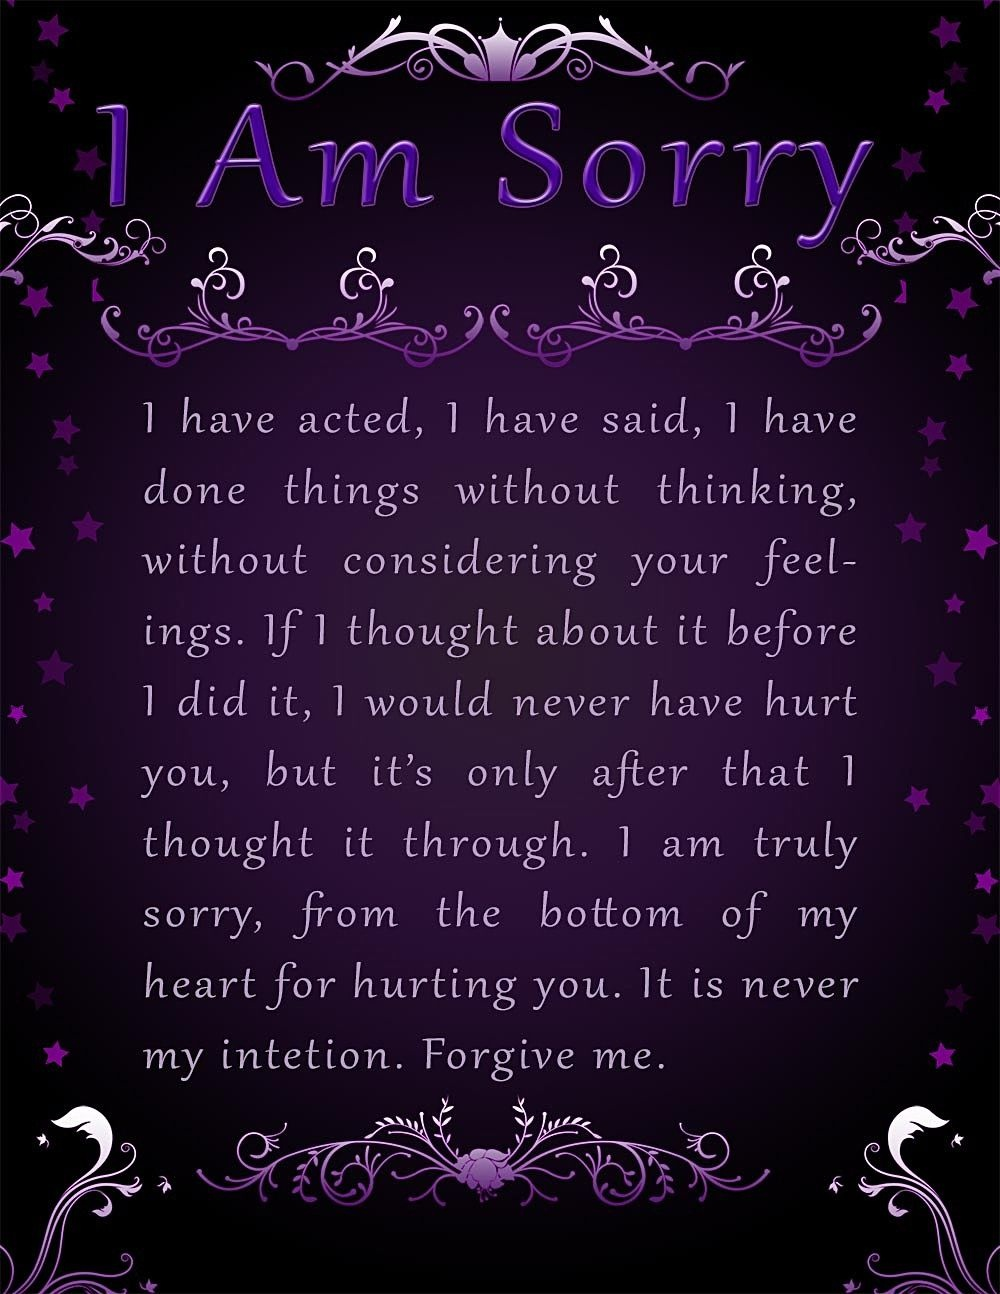 Apology Card Templates | 10+ Free Printable Word & Pdf - Free Printable I Am Sorry Cards